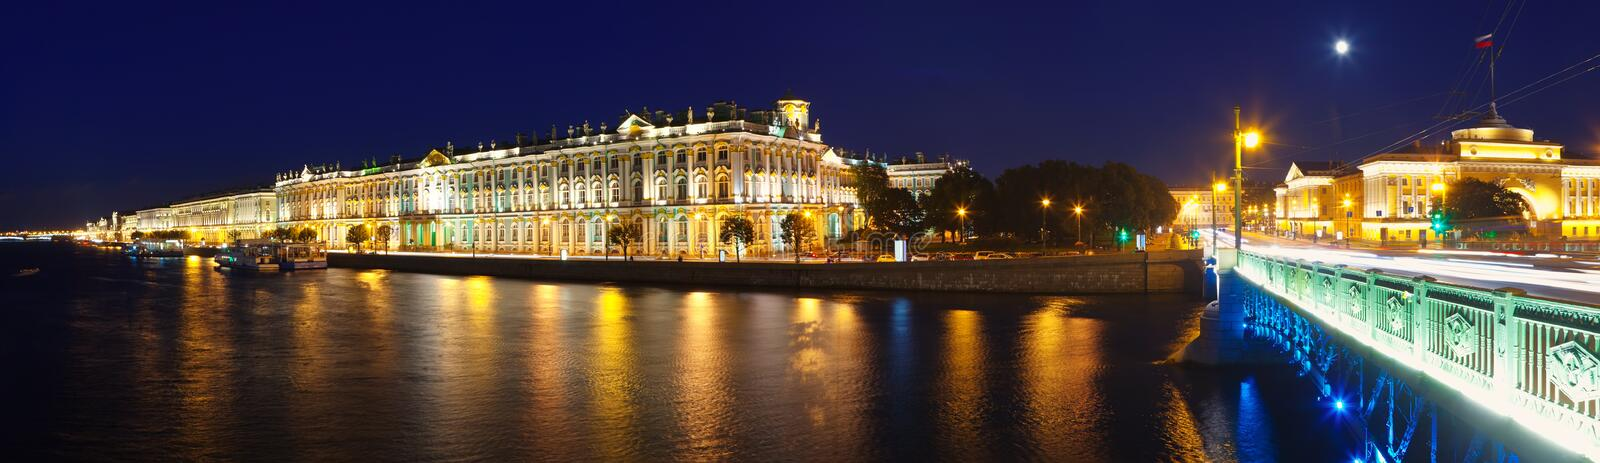 Panorama of Winter Palace in night royalty free stock photos